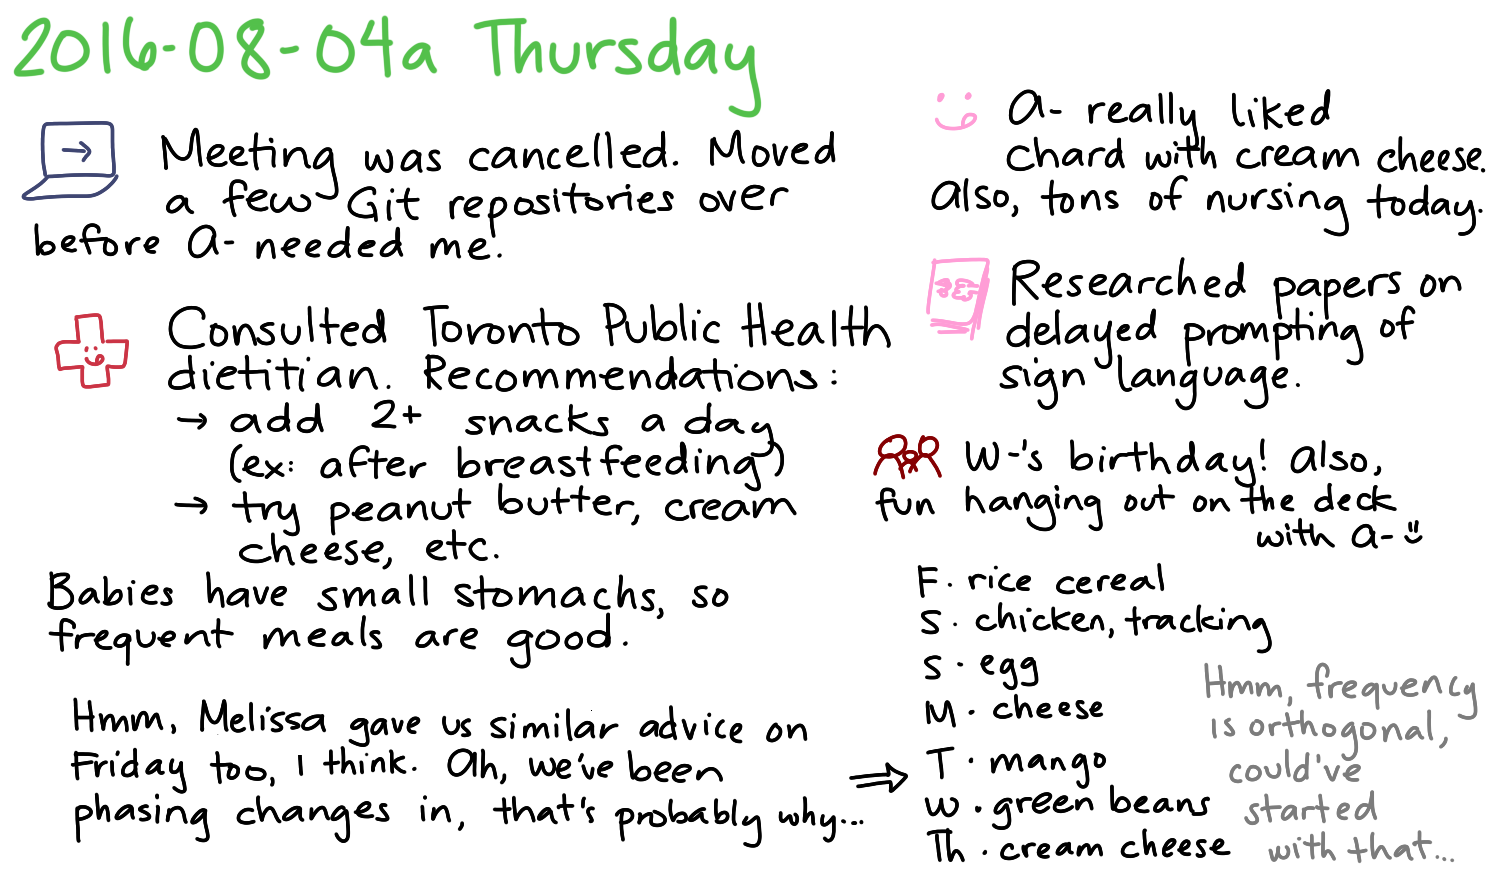 2016-08-04a Thursday -- index card #journal.png